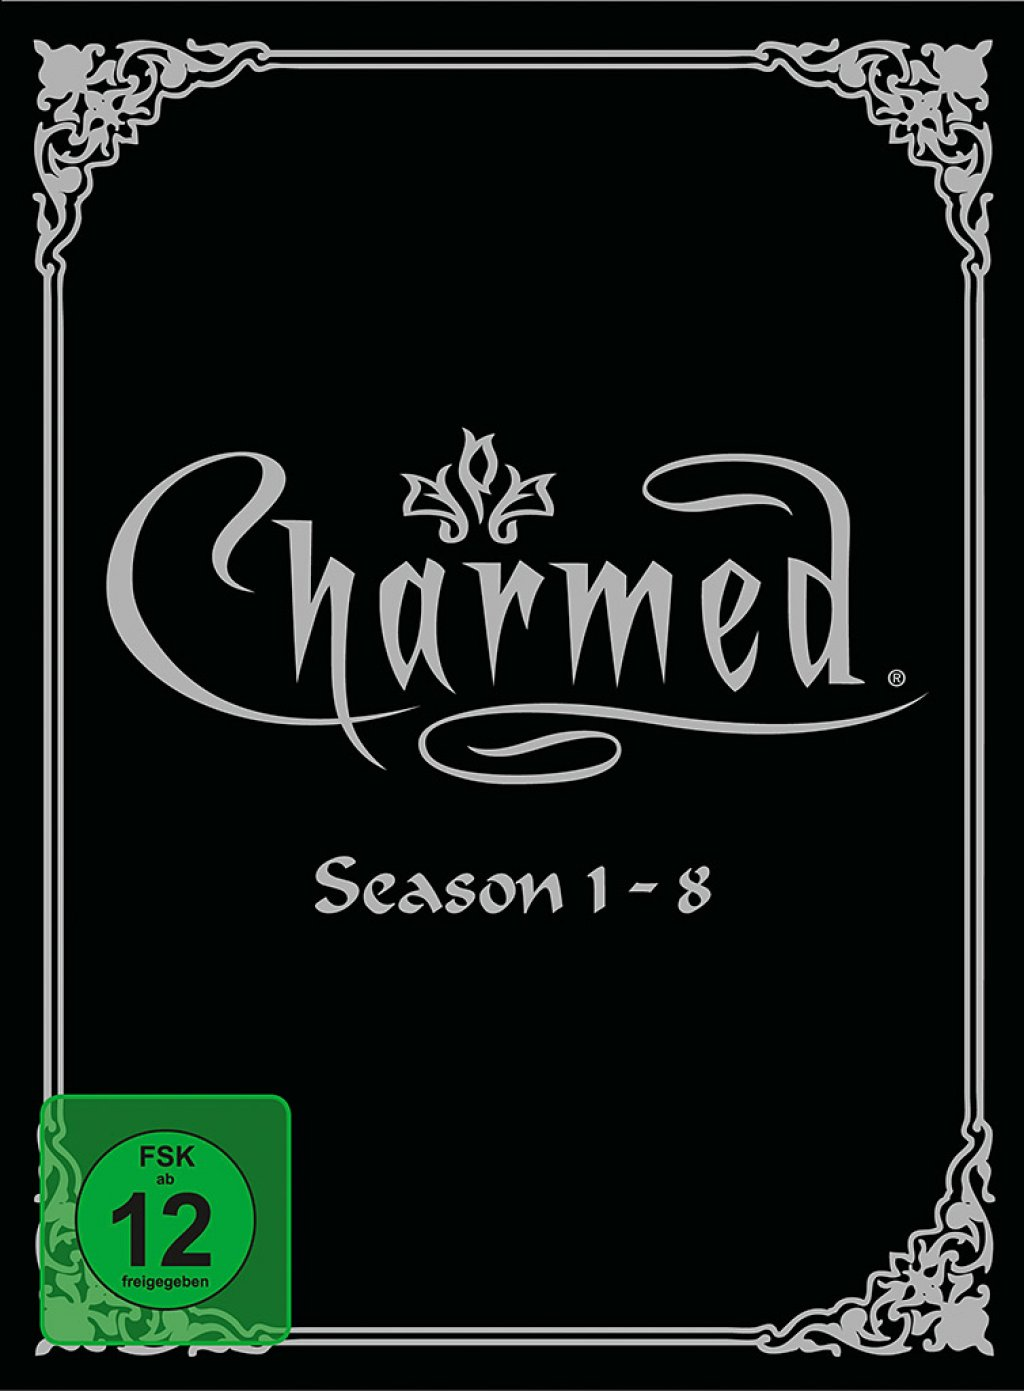 Episodenguide Charmed